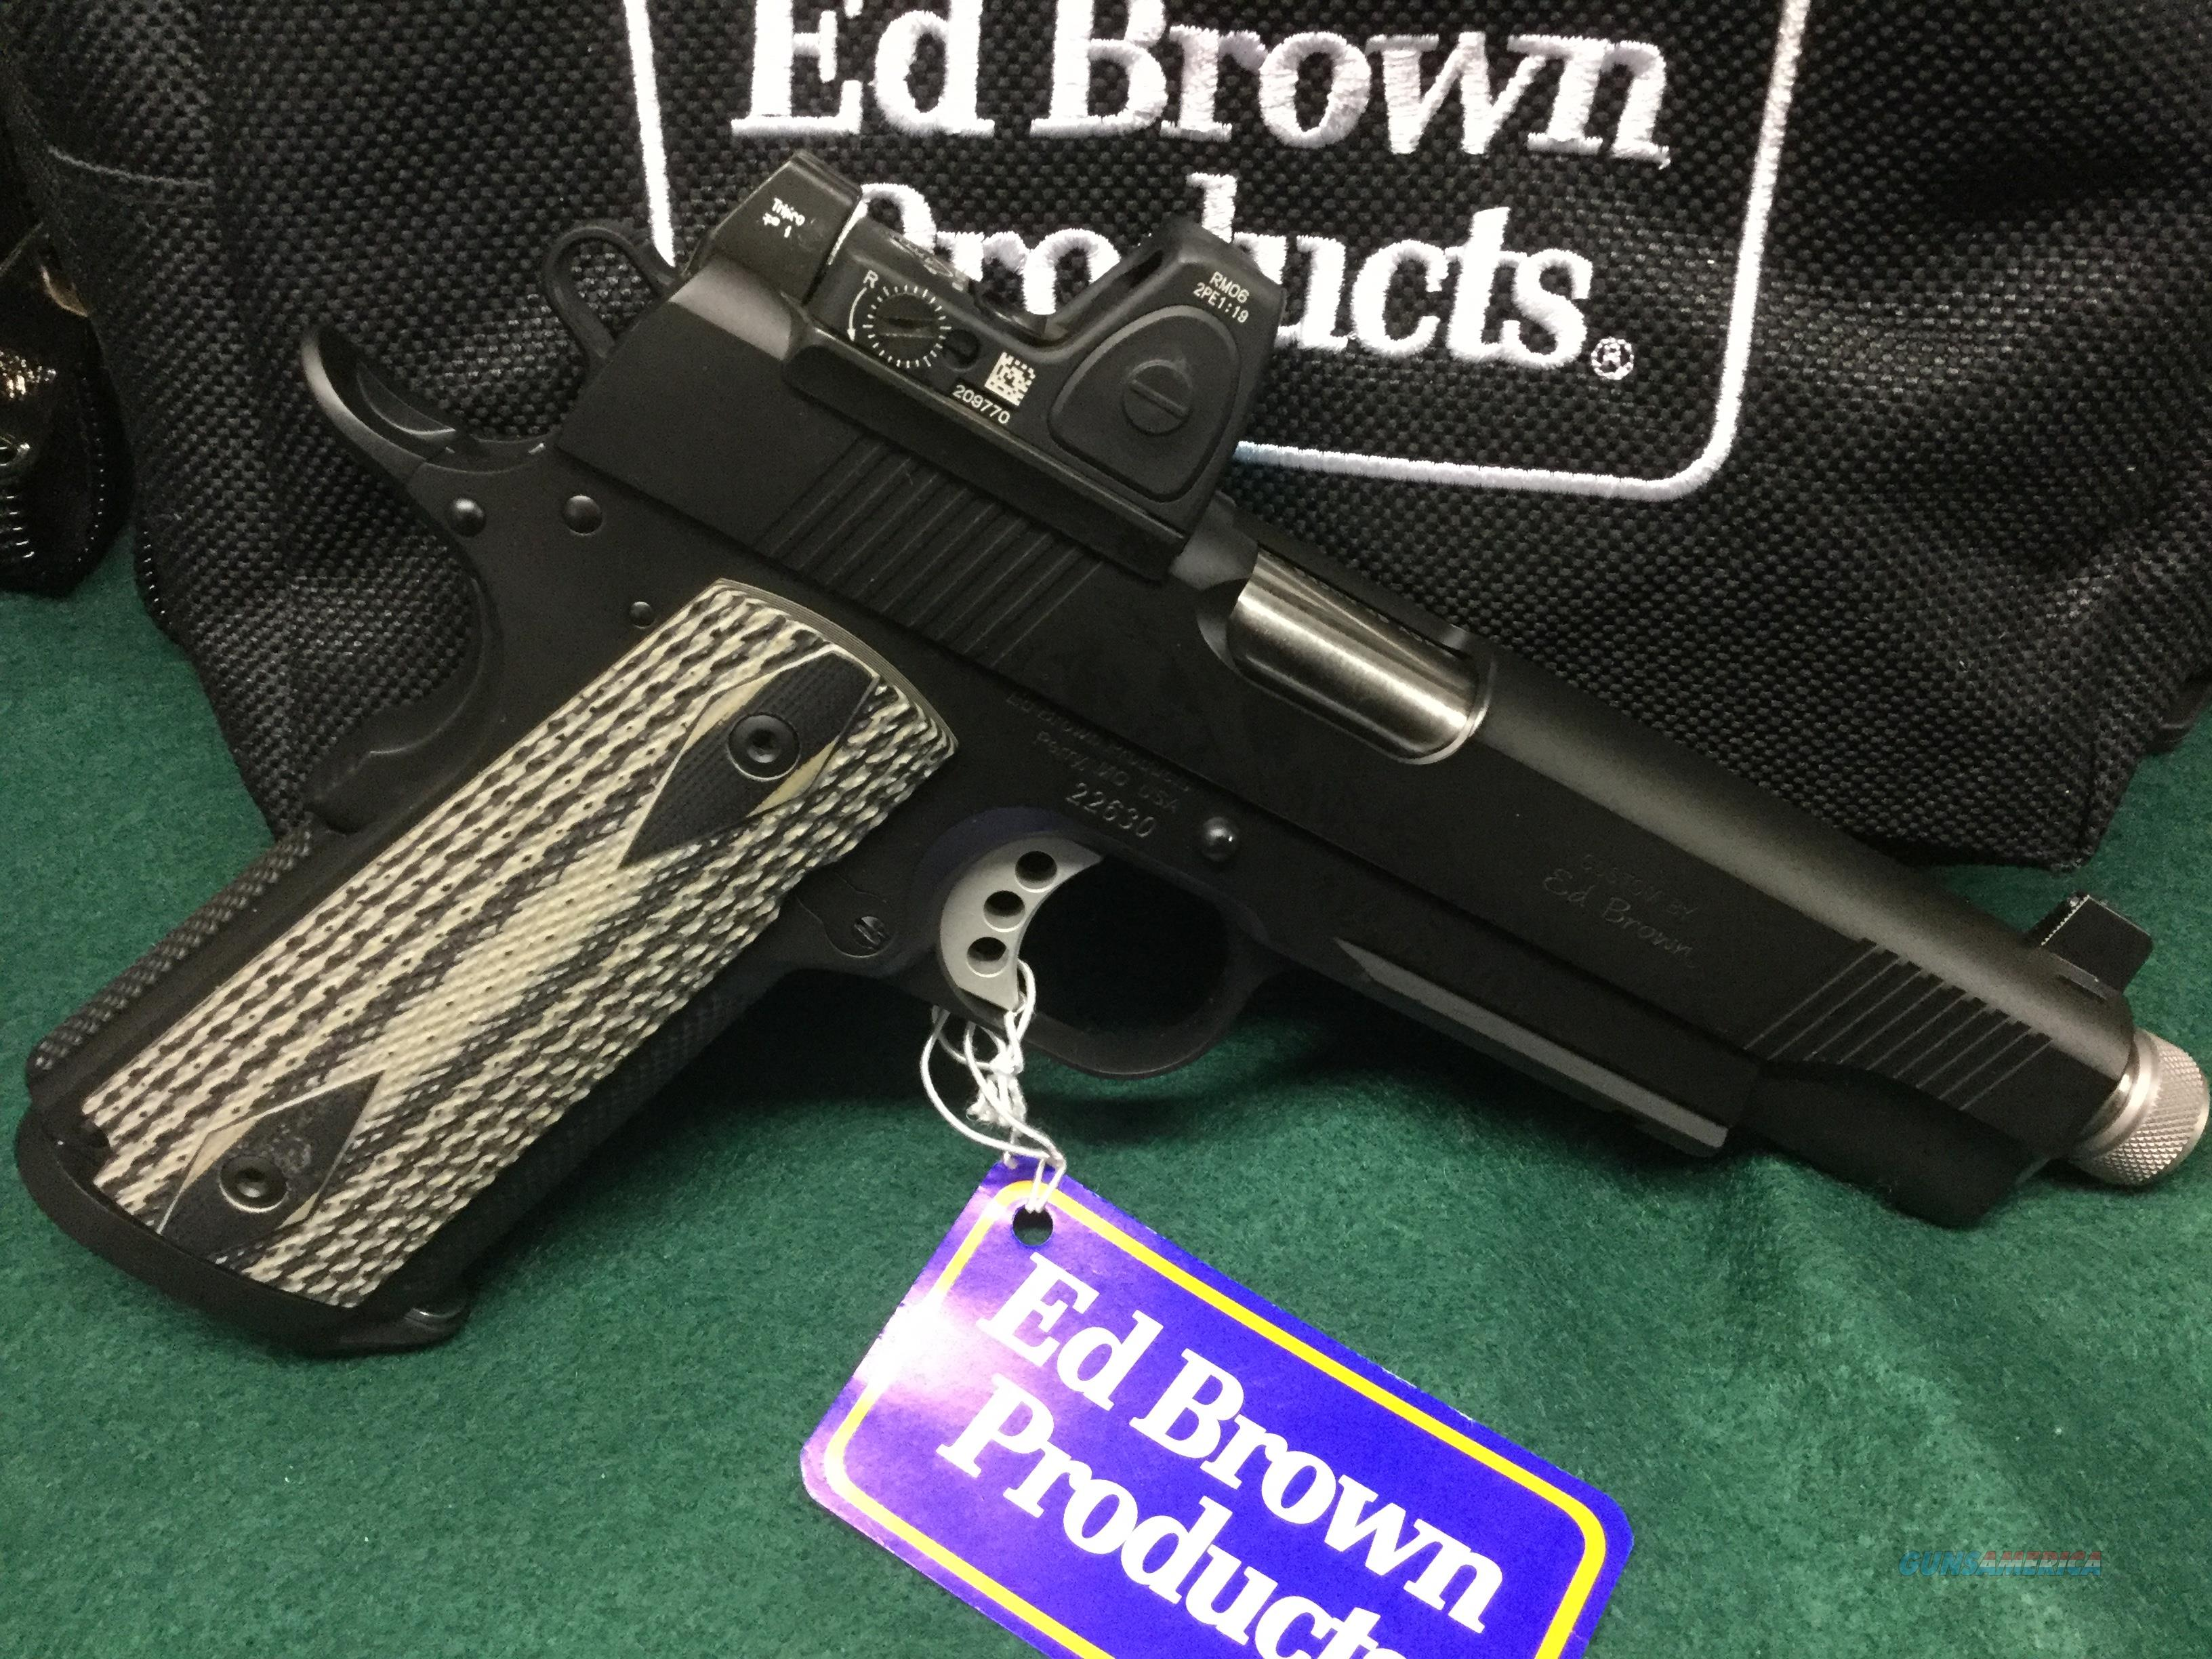 ED BROWN SPECIAL FORCES SR .45ACP - TRIJICON RMR - TRIJICON TALL IRON NIGHT SIGHTS  Guns > Pistols > Ed Brown Pistols